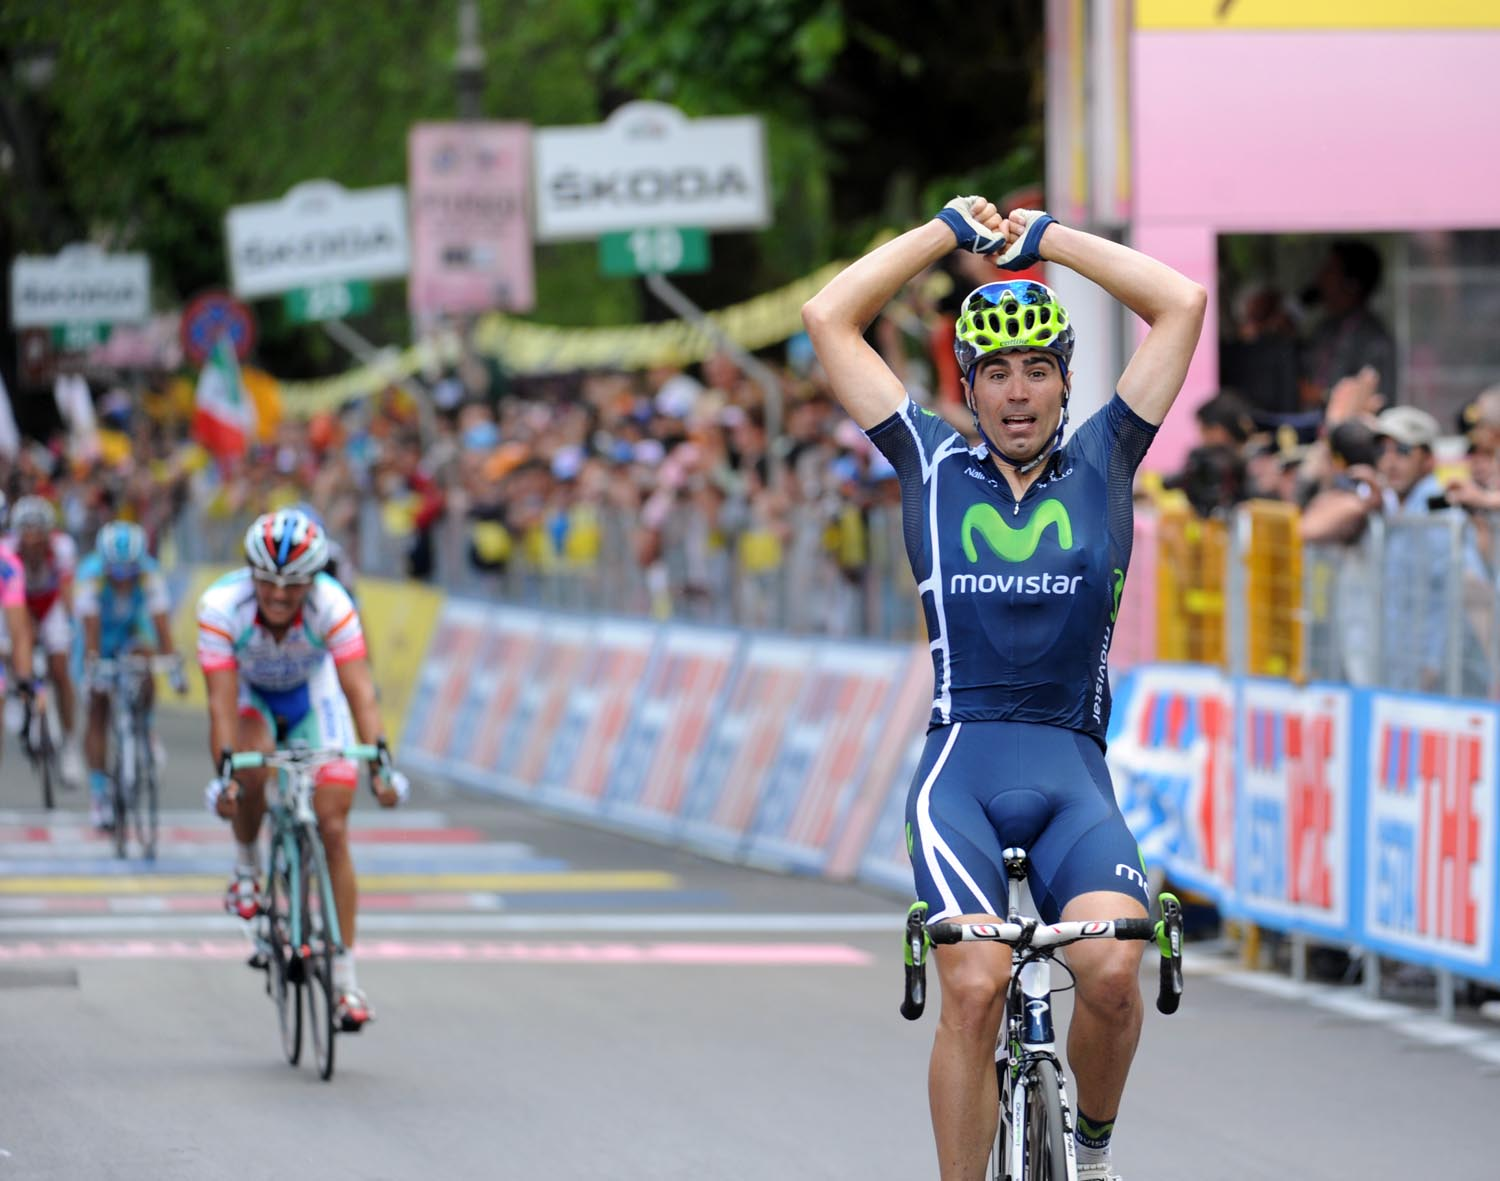 Francisco Ventoso wins, Giro d